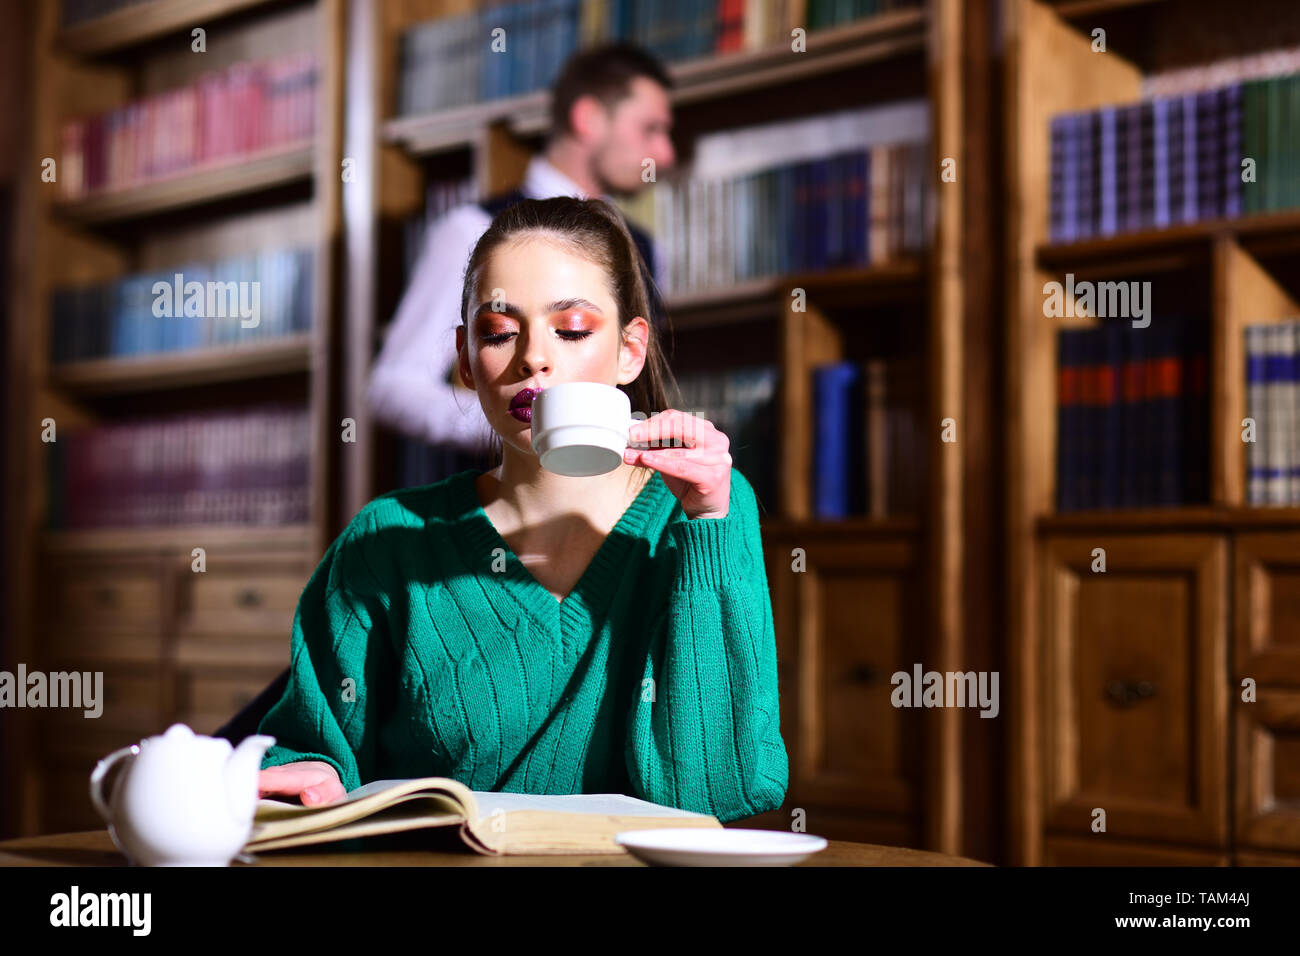 literature cafe with cute girl and man. woman in library read book at teapot drinking coffee from cup. student life in university. agile business and  - Stock Image